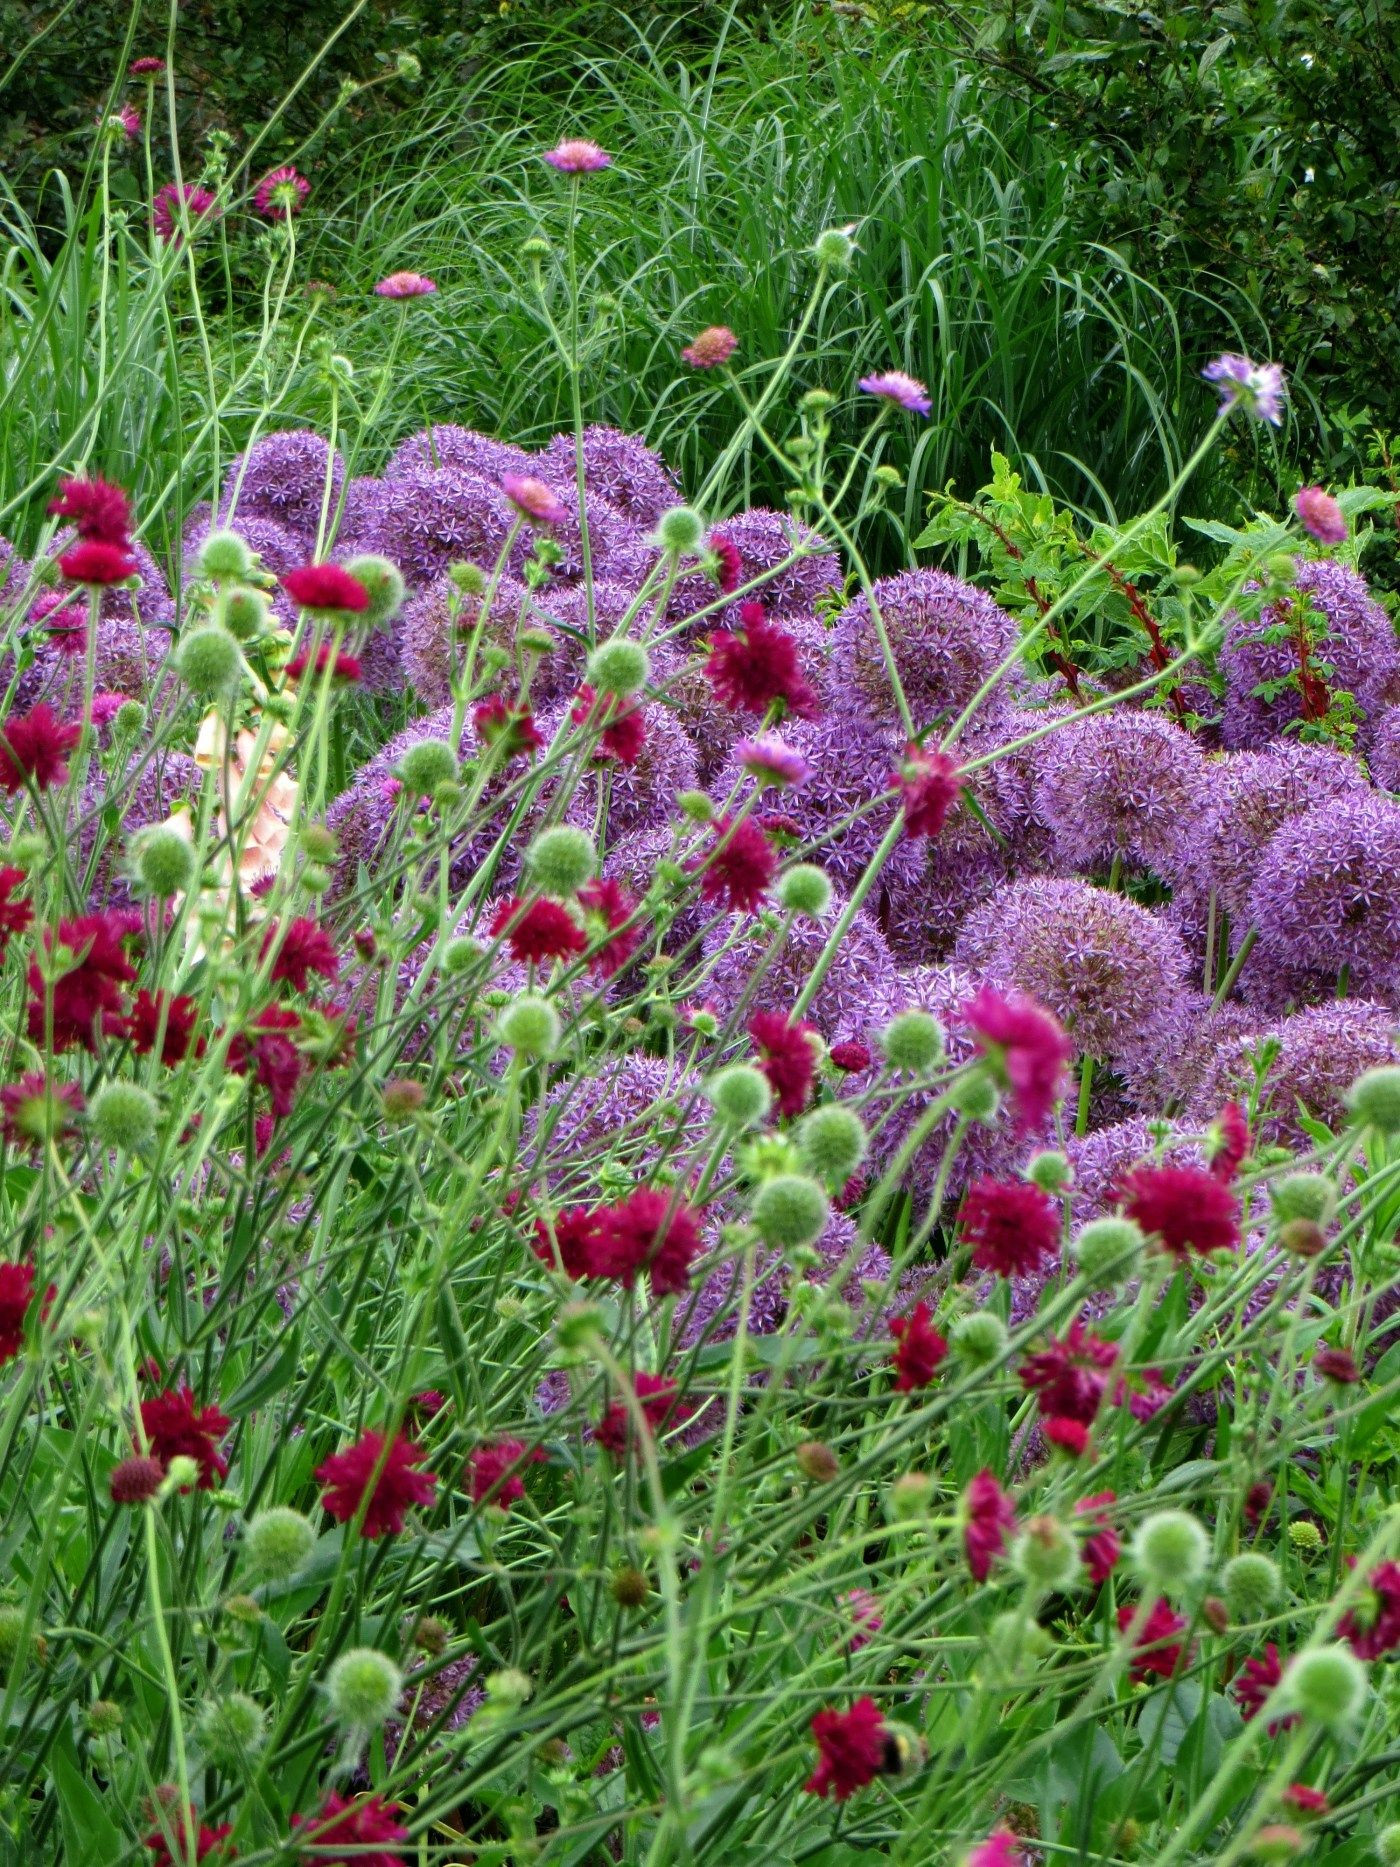 Two of my favourites for colour shape and long bloom knautia macedonica and alliums